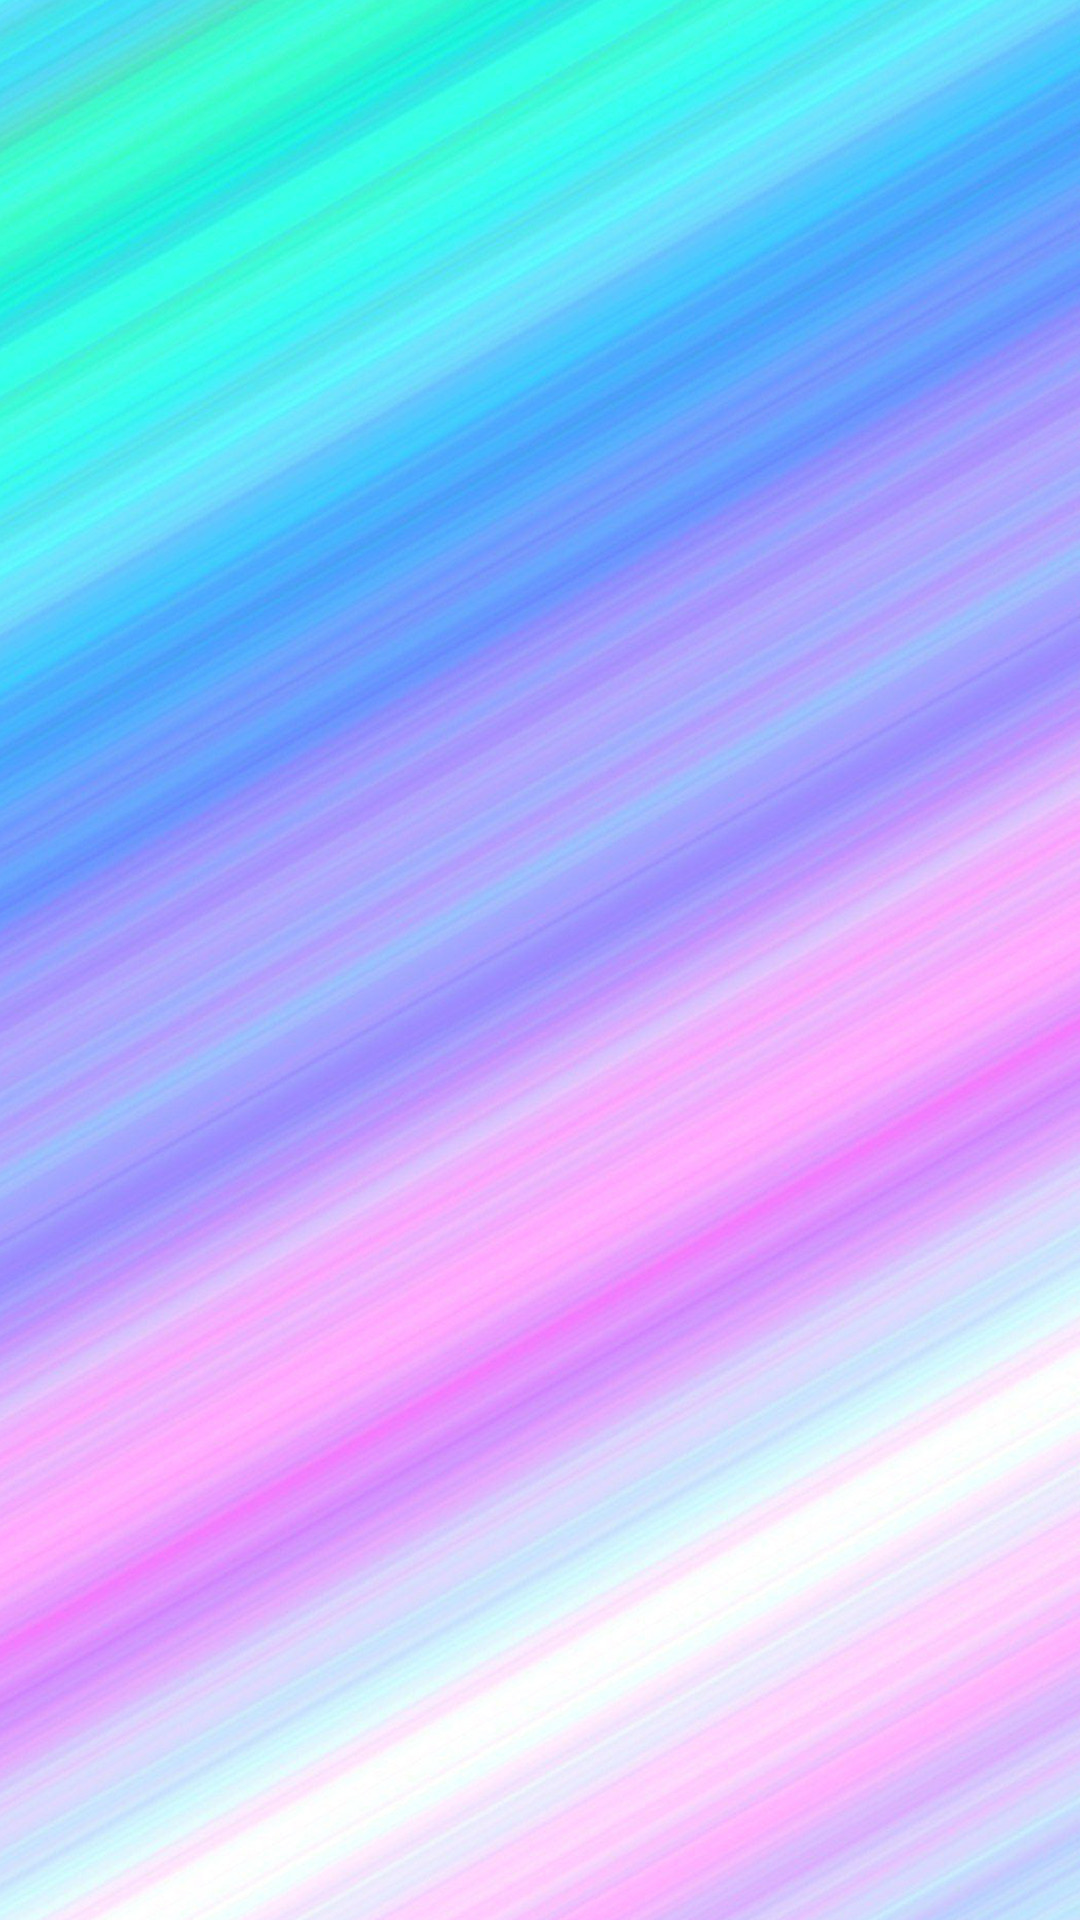 Abstract Colorful Pink Blue Galaxy Wallpaper For Samsung Galaxy Pastel Blue Backgrounds 1080x1920 Wallpaper Teahub Io